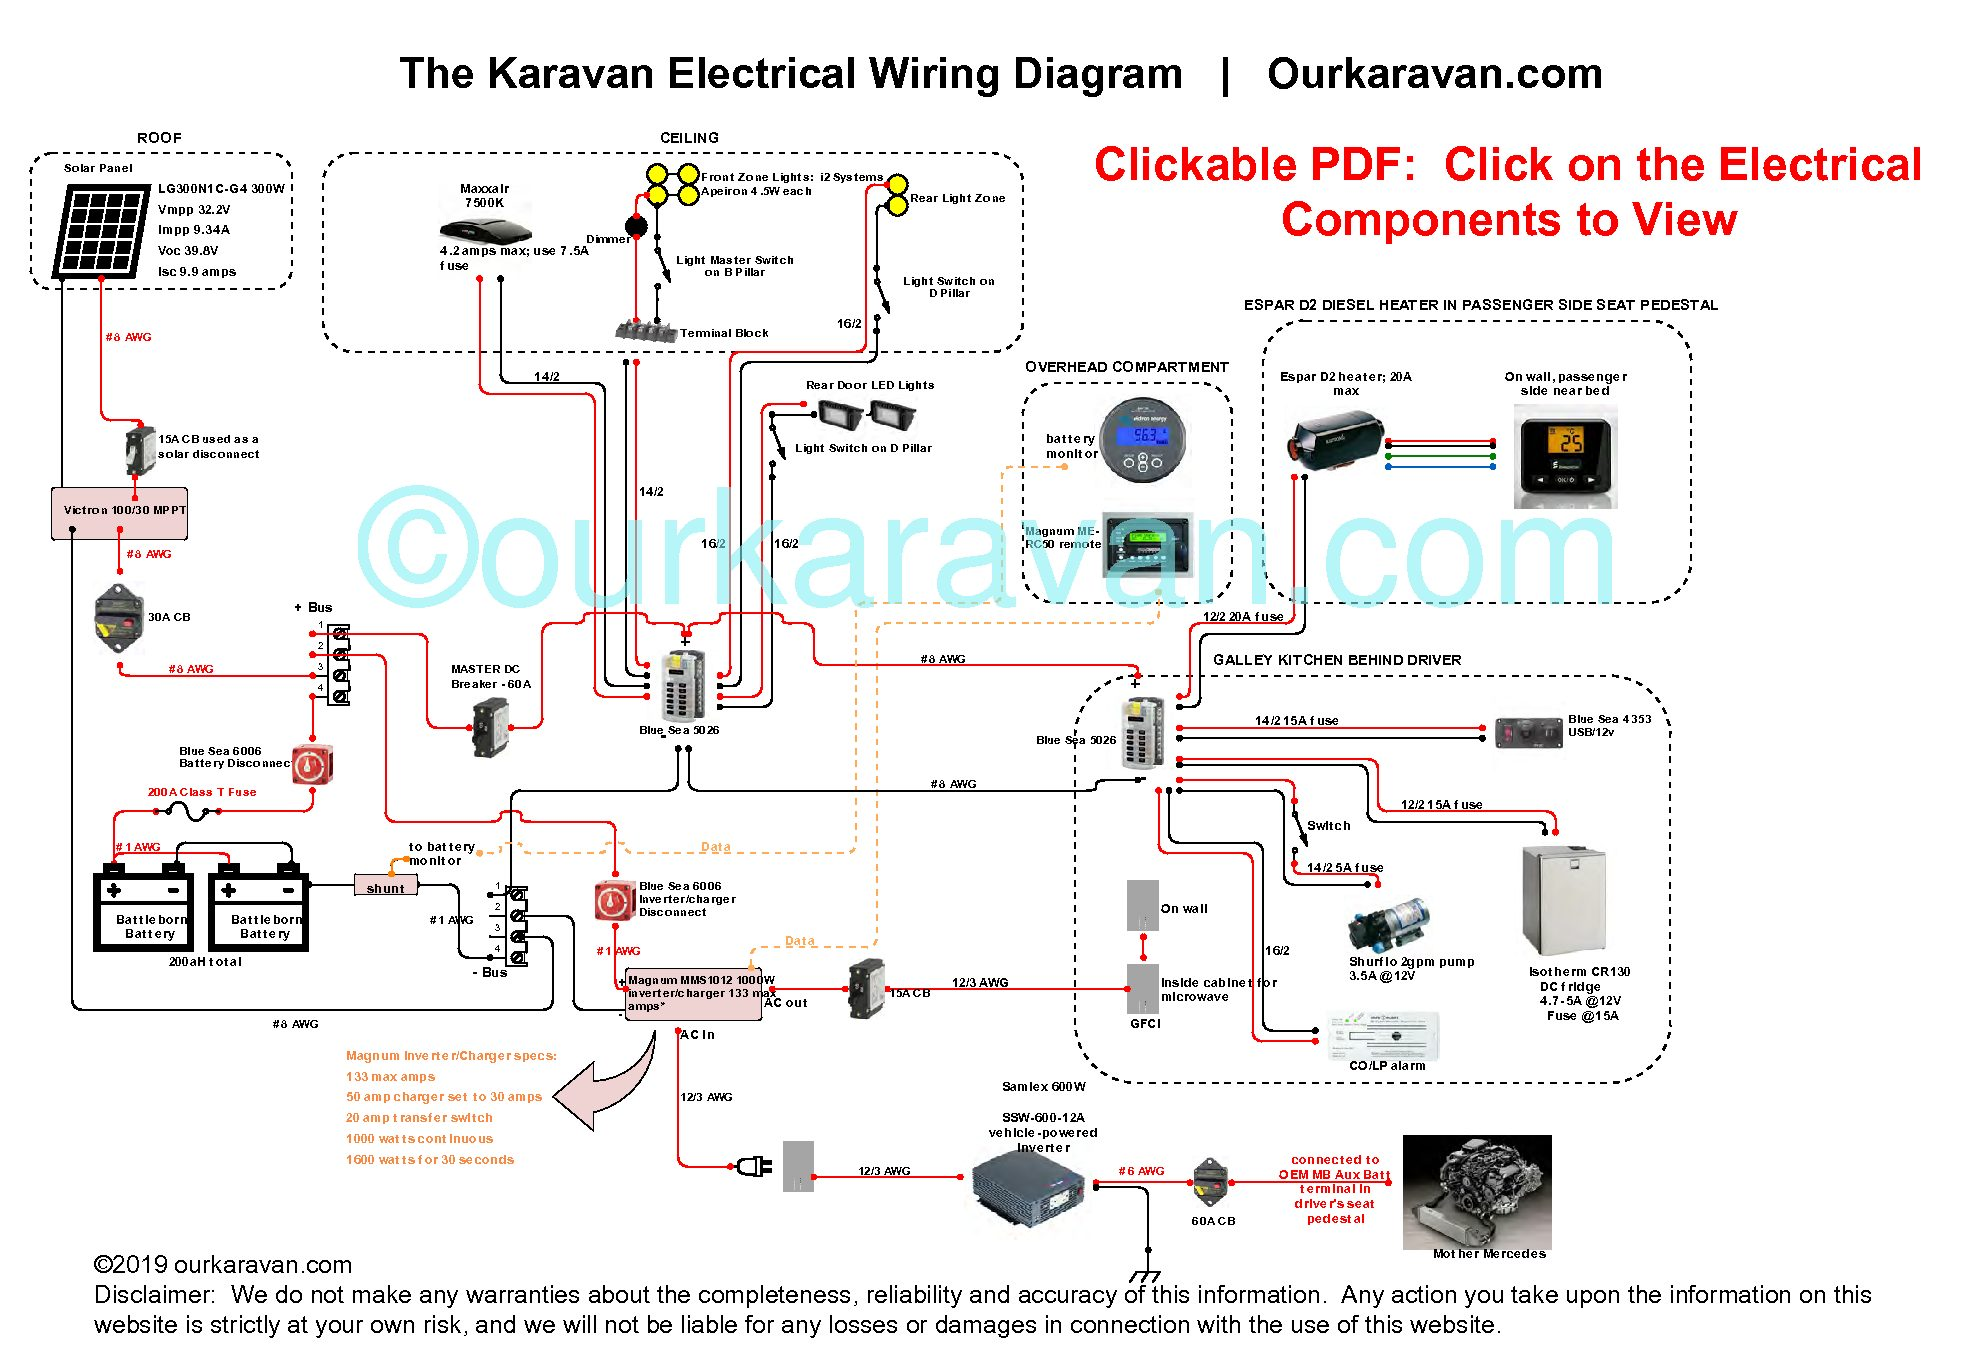 sprinter lithium battery wiring diagram